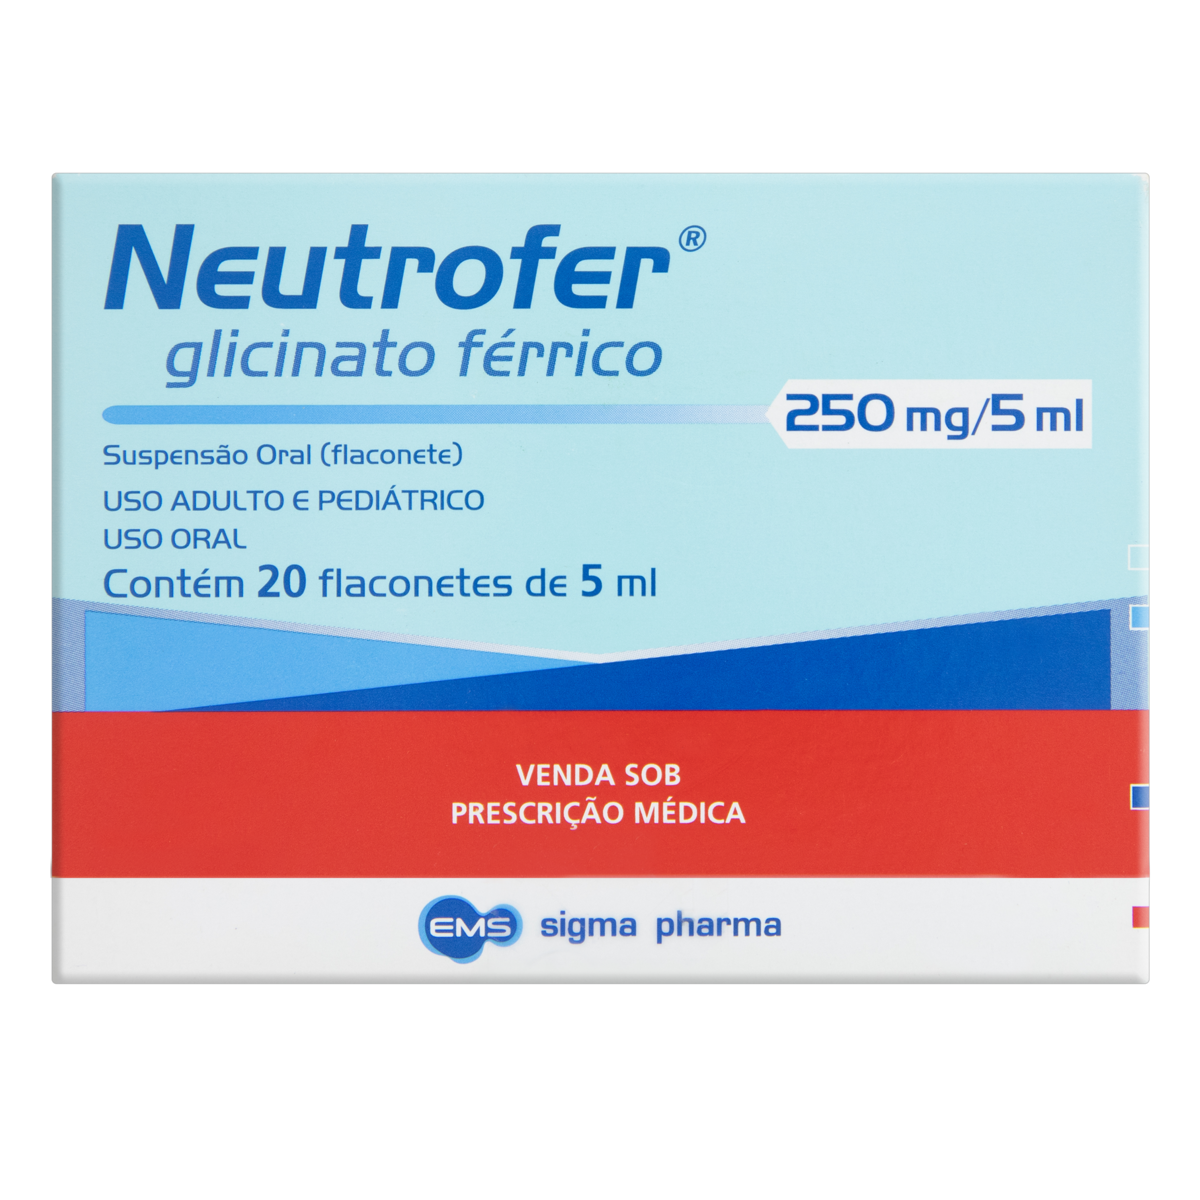 7894916500289 - NEUTROFER 250 MG/ML 20 FLACONETES 5 ML SIMILAR